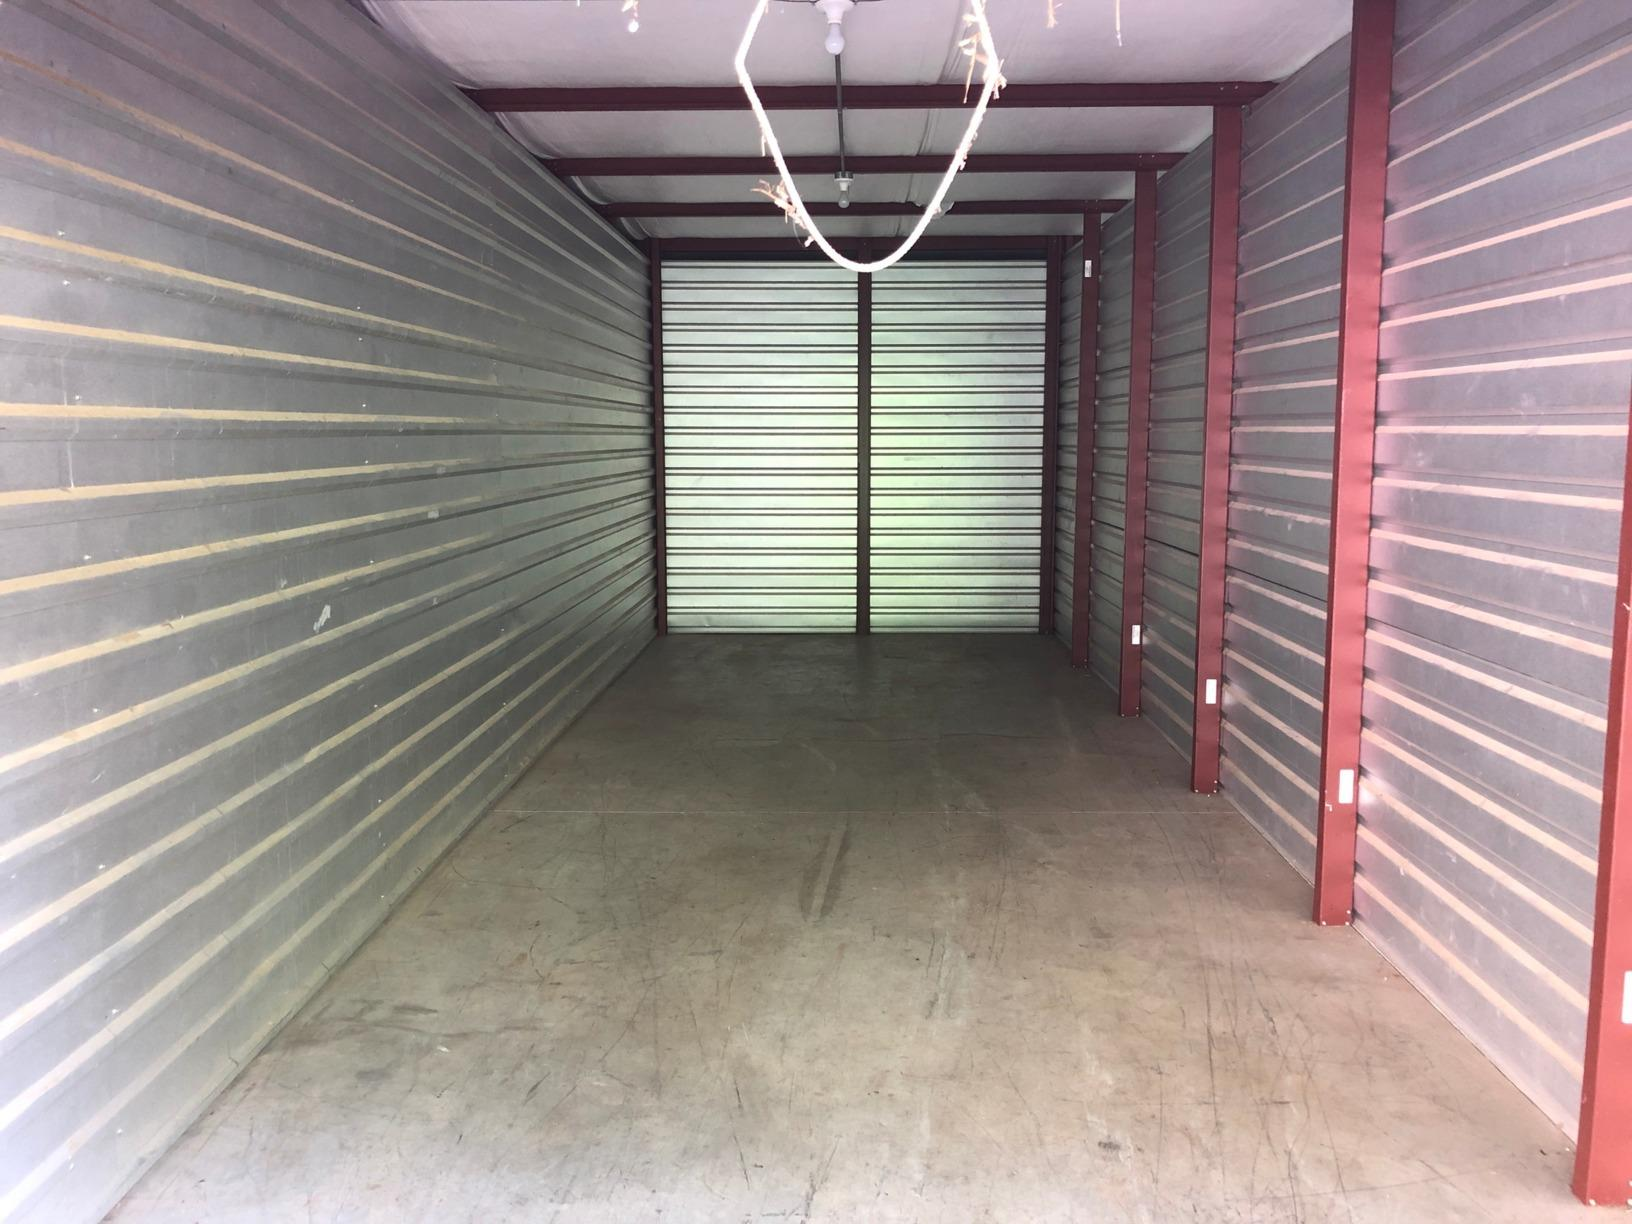 Storage Unit Cleanout in Cumming, GA - After Photo